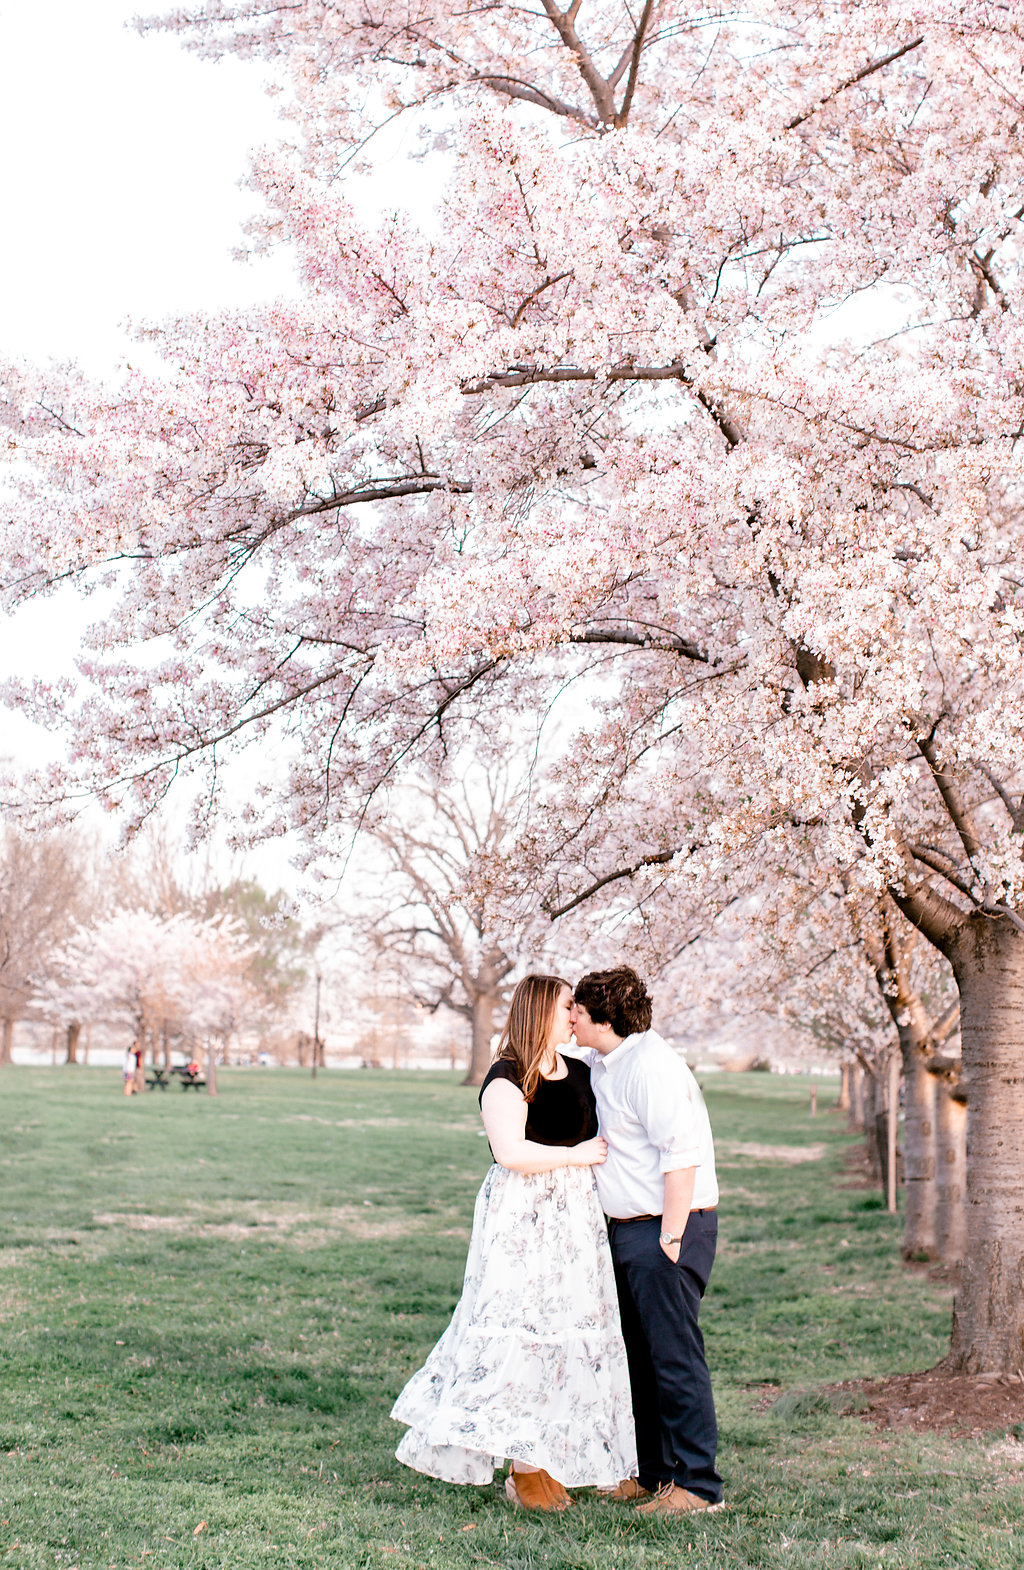 Hains Point Cherry Blossom Engagement Photography | Washington, D.C. | Andrea Rodway Photography